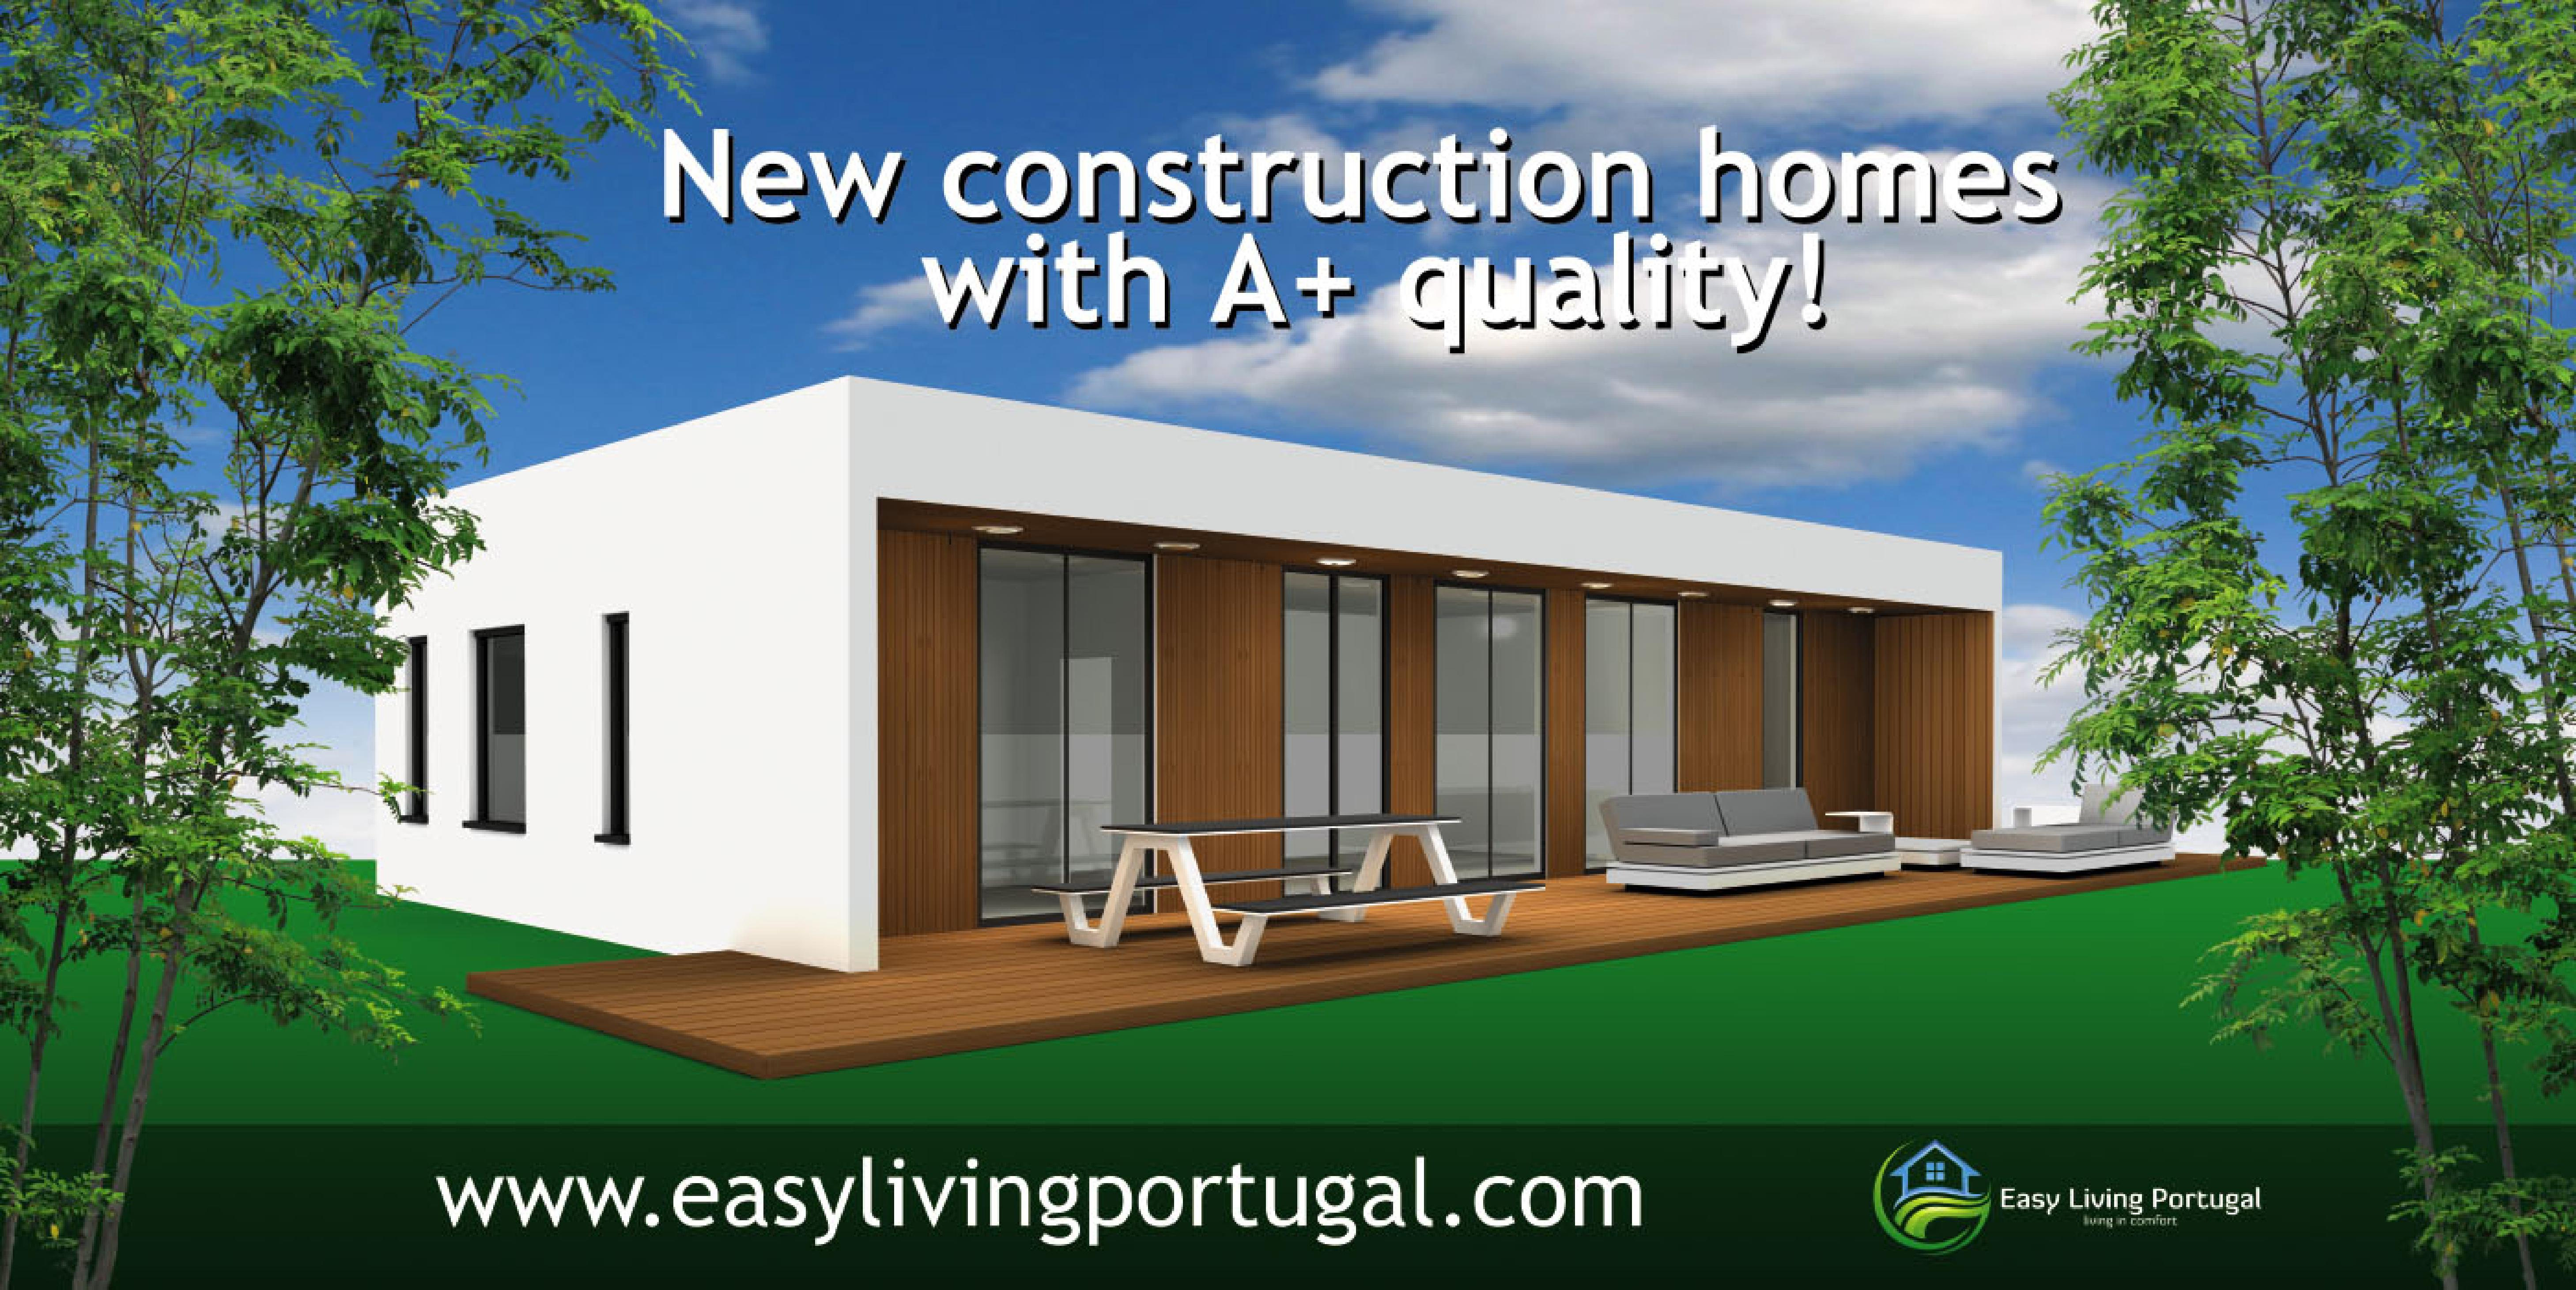 What about Easy Living Portugal in the Minho Portugal?